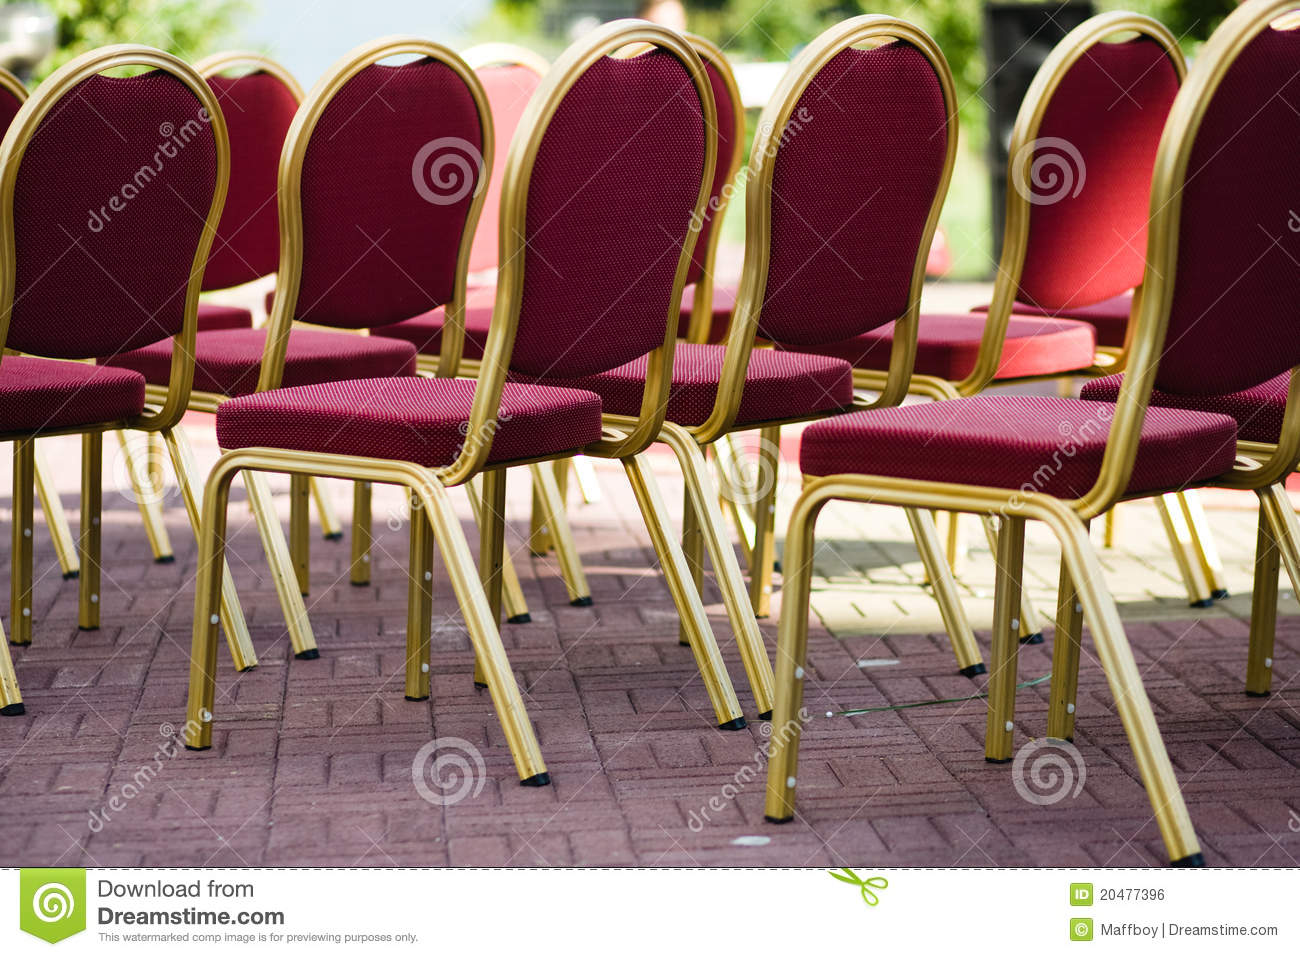 wedding photo covers outdoor at chair and chairs stock picture an